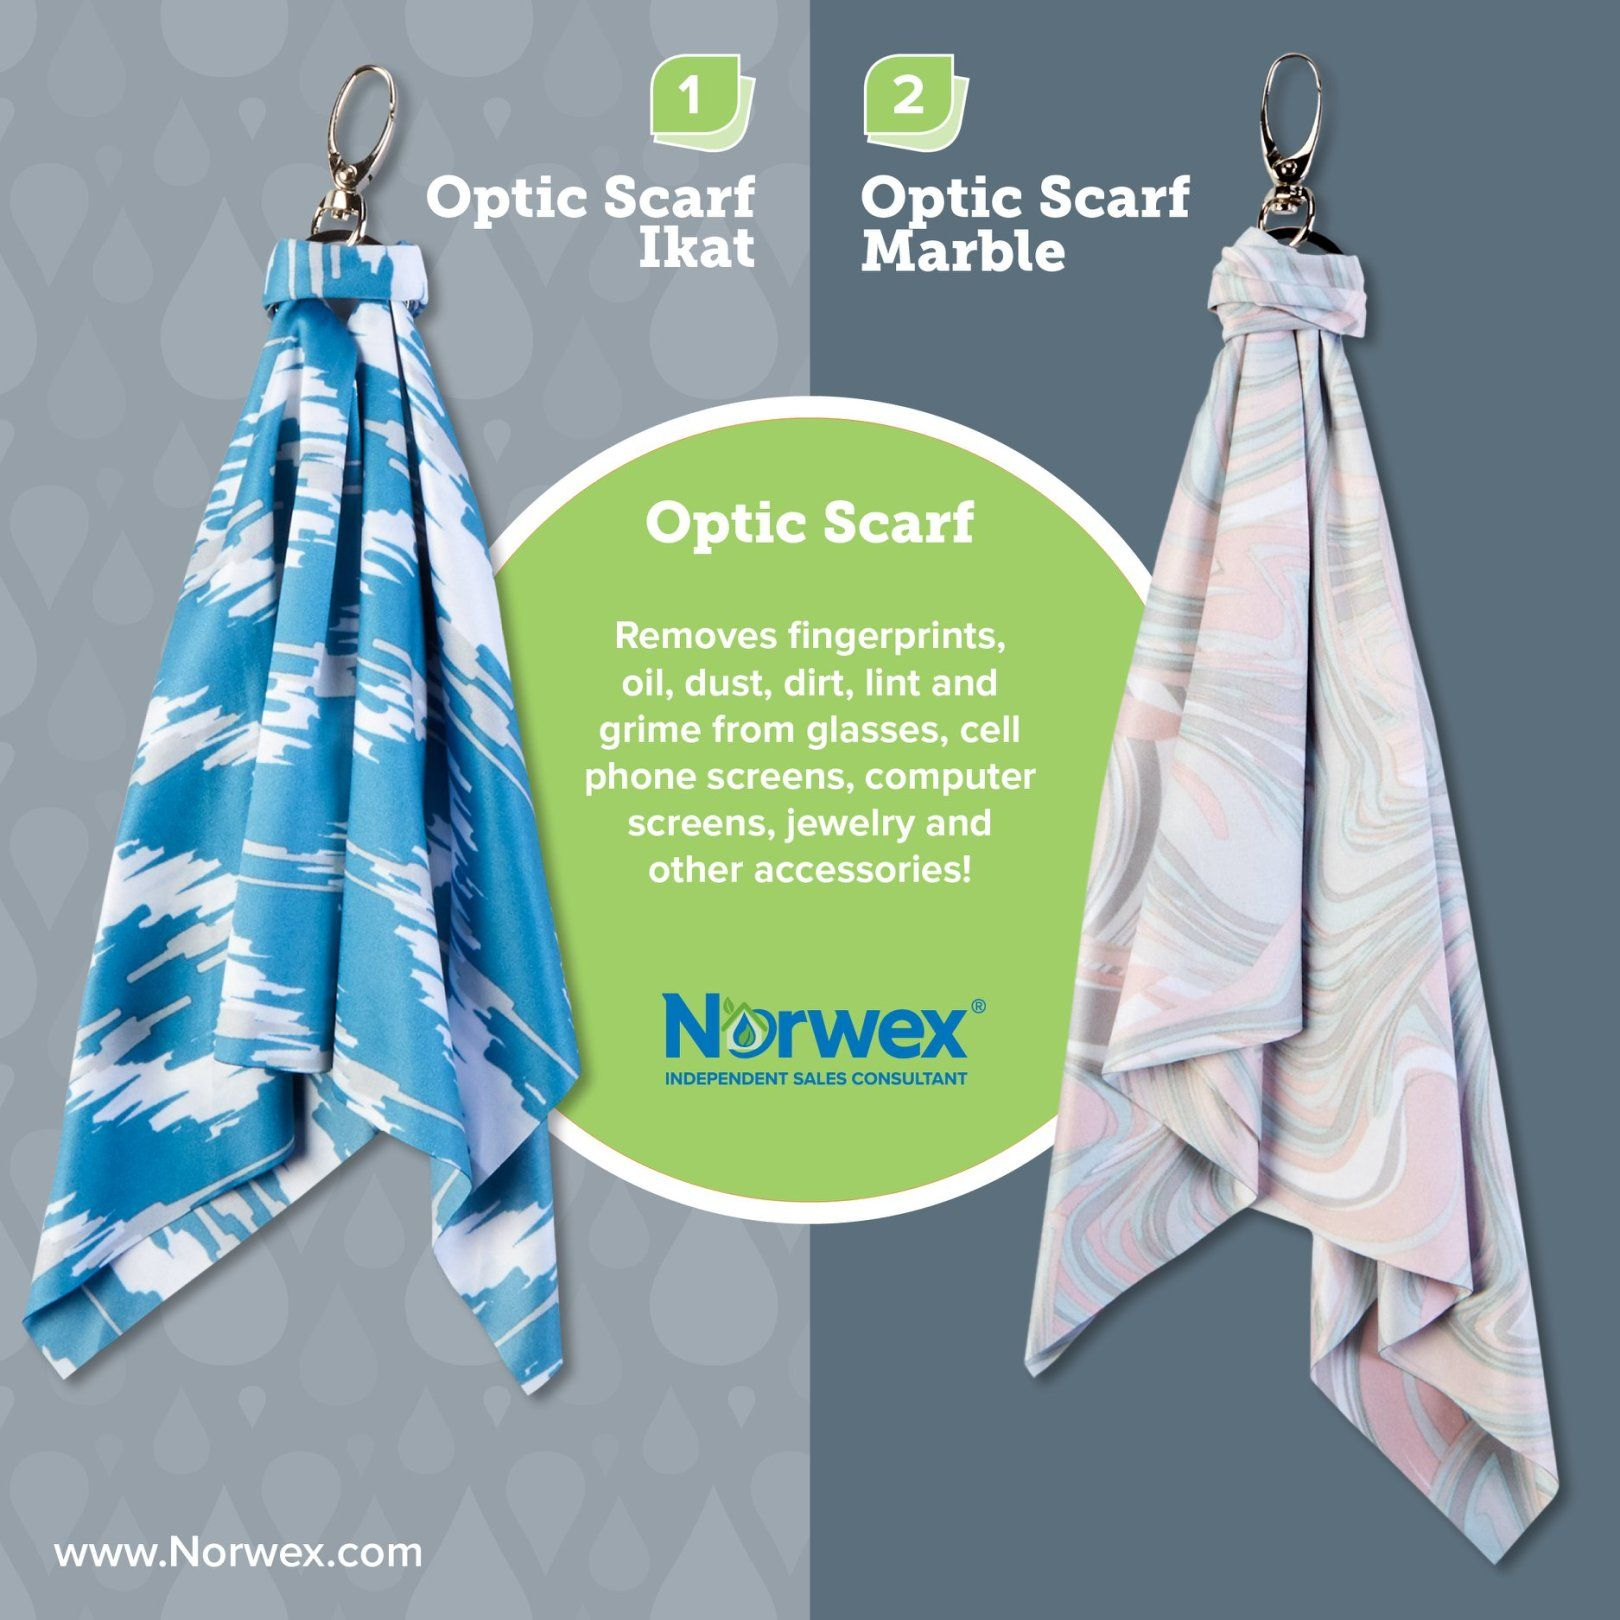 New Product Packs Norwex, Norwex cleaning, Norwex consultant